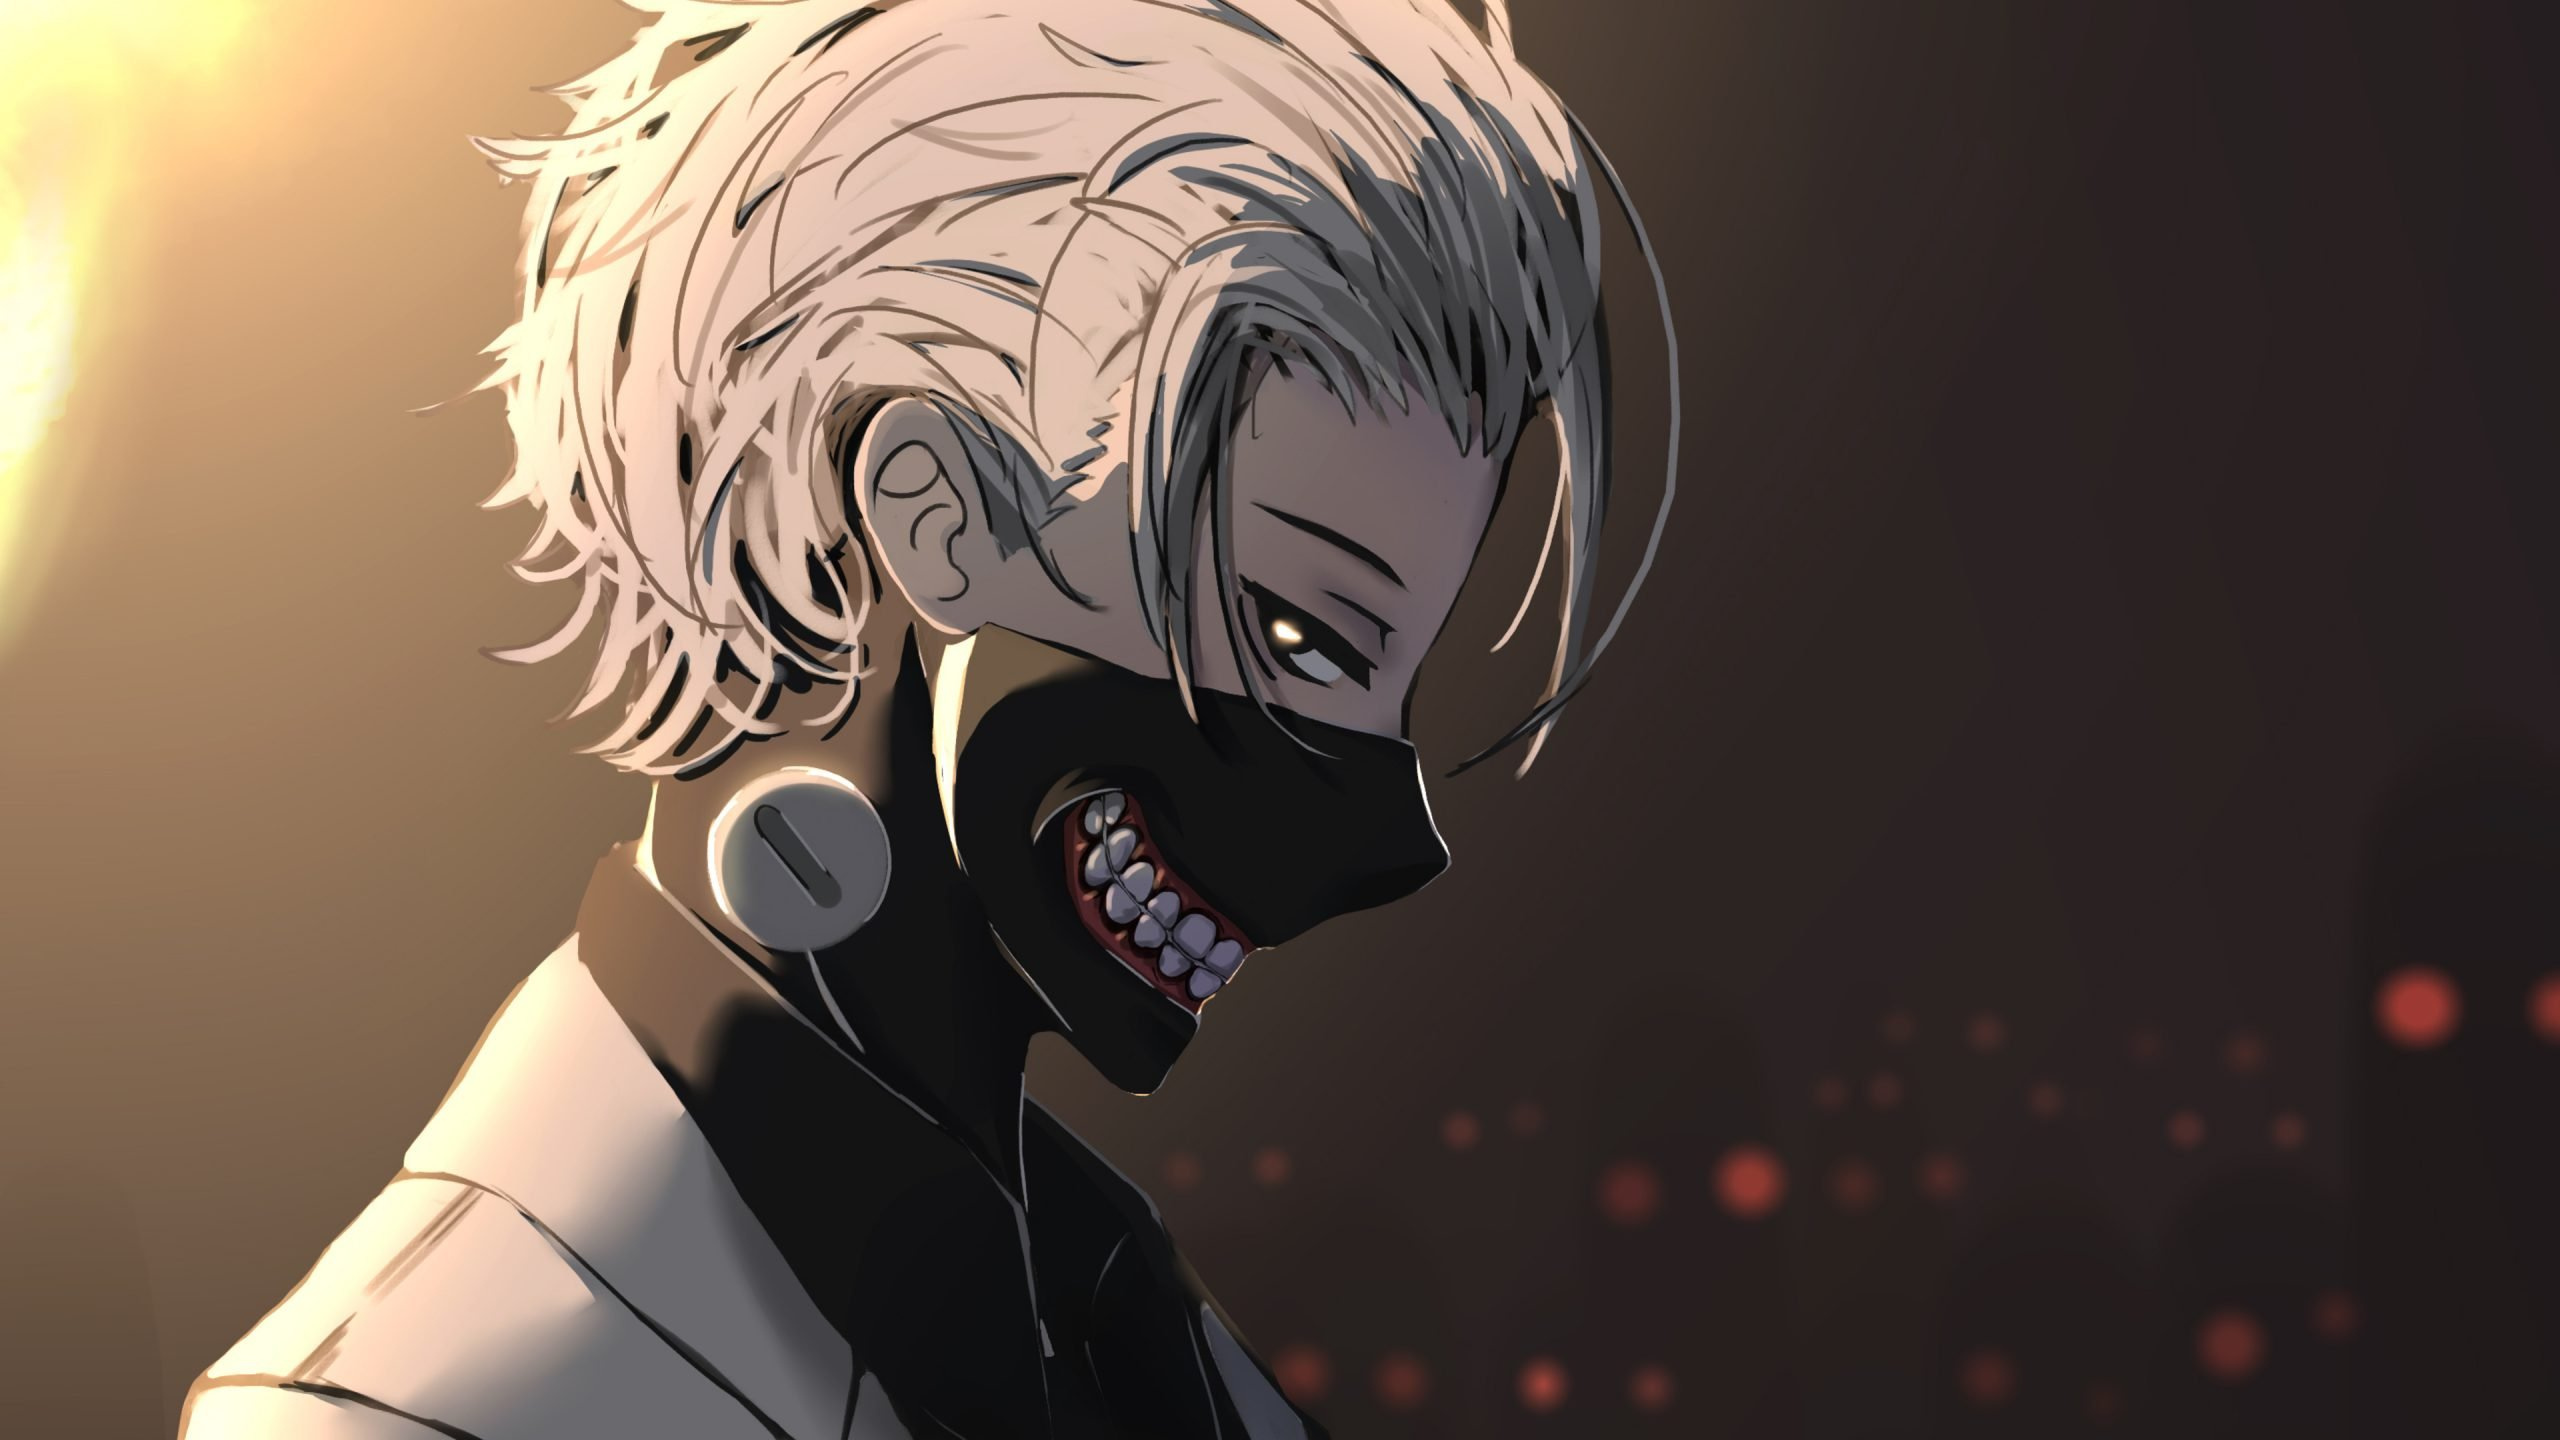 Top 5 Anime Characters with White Hair